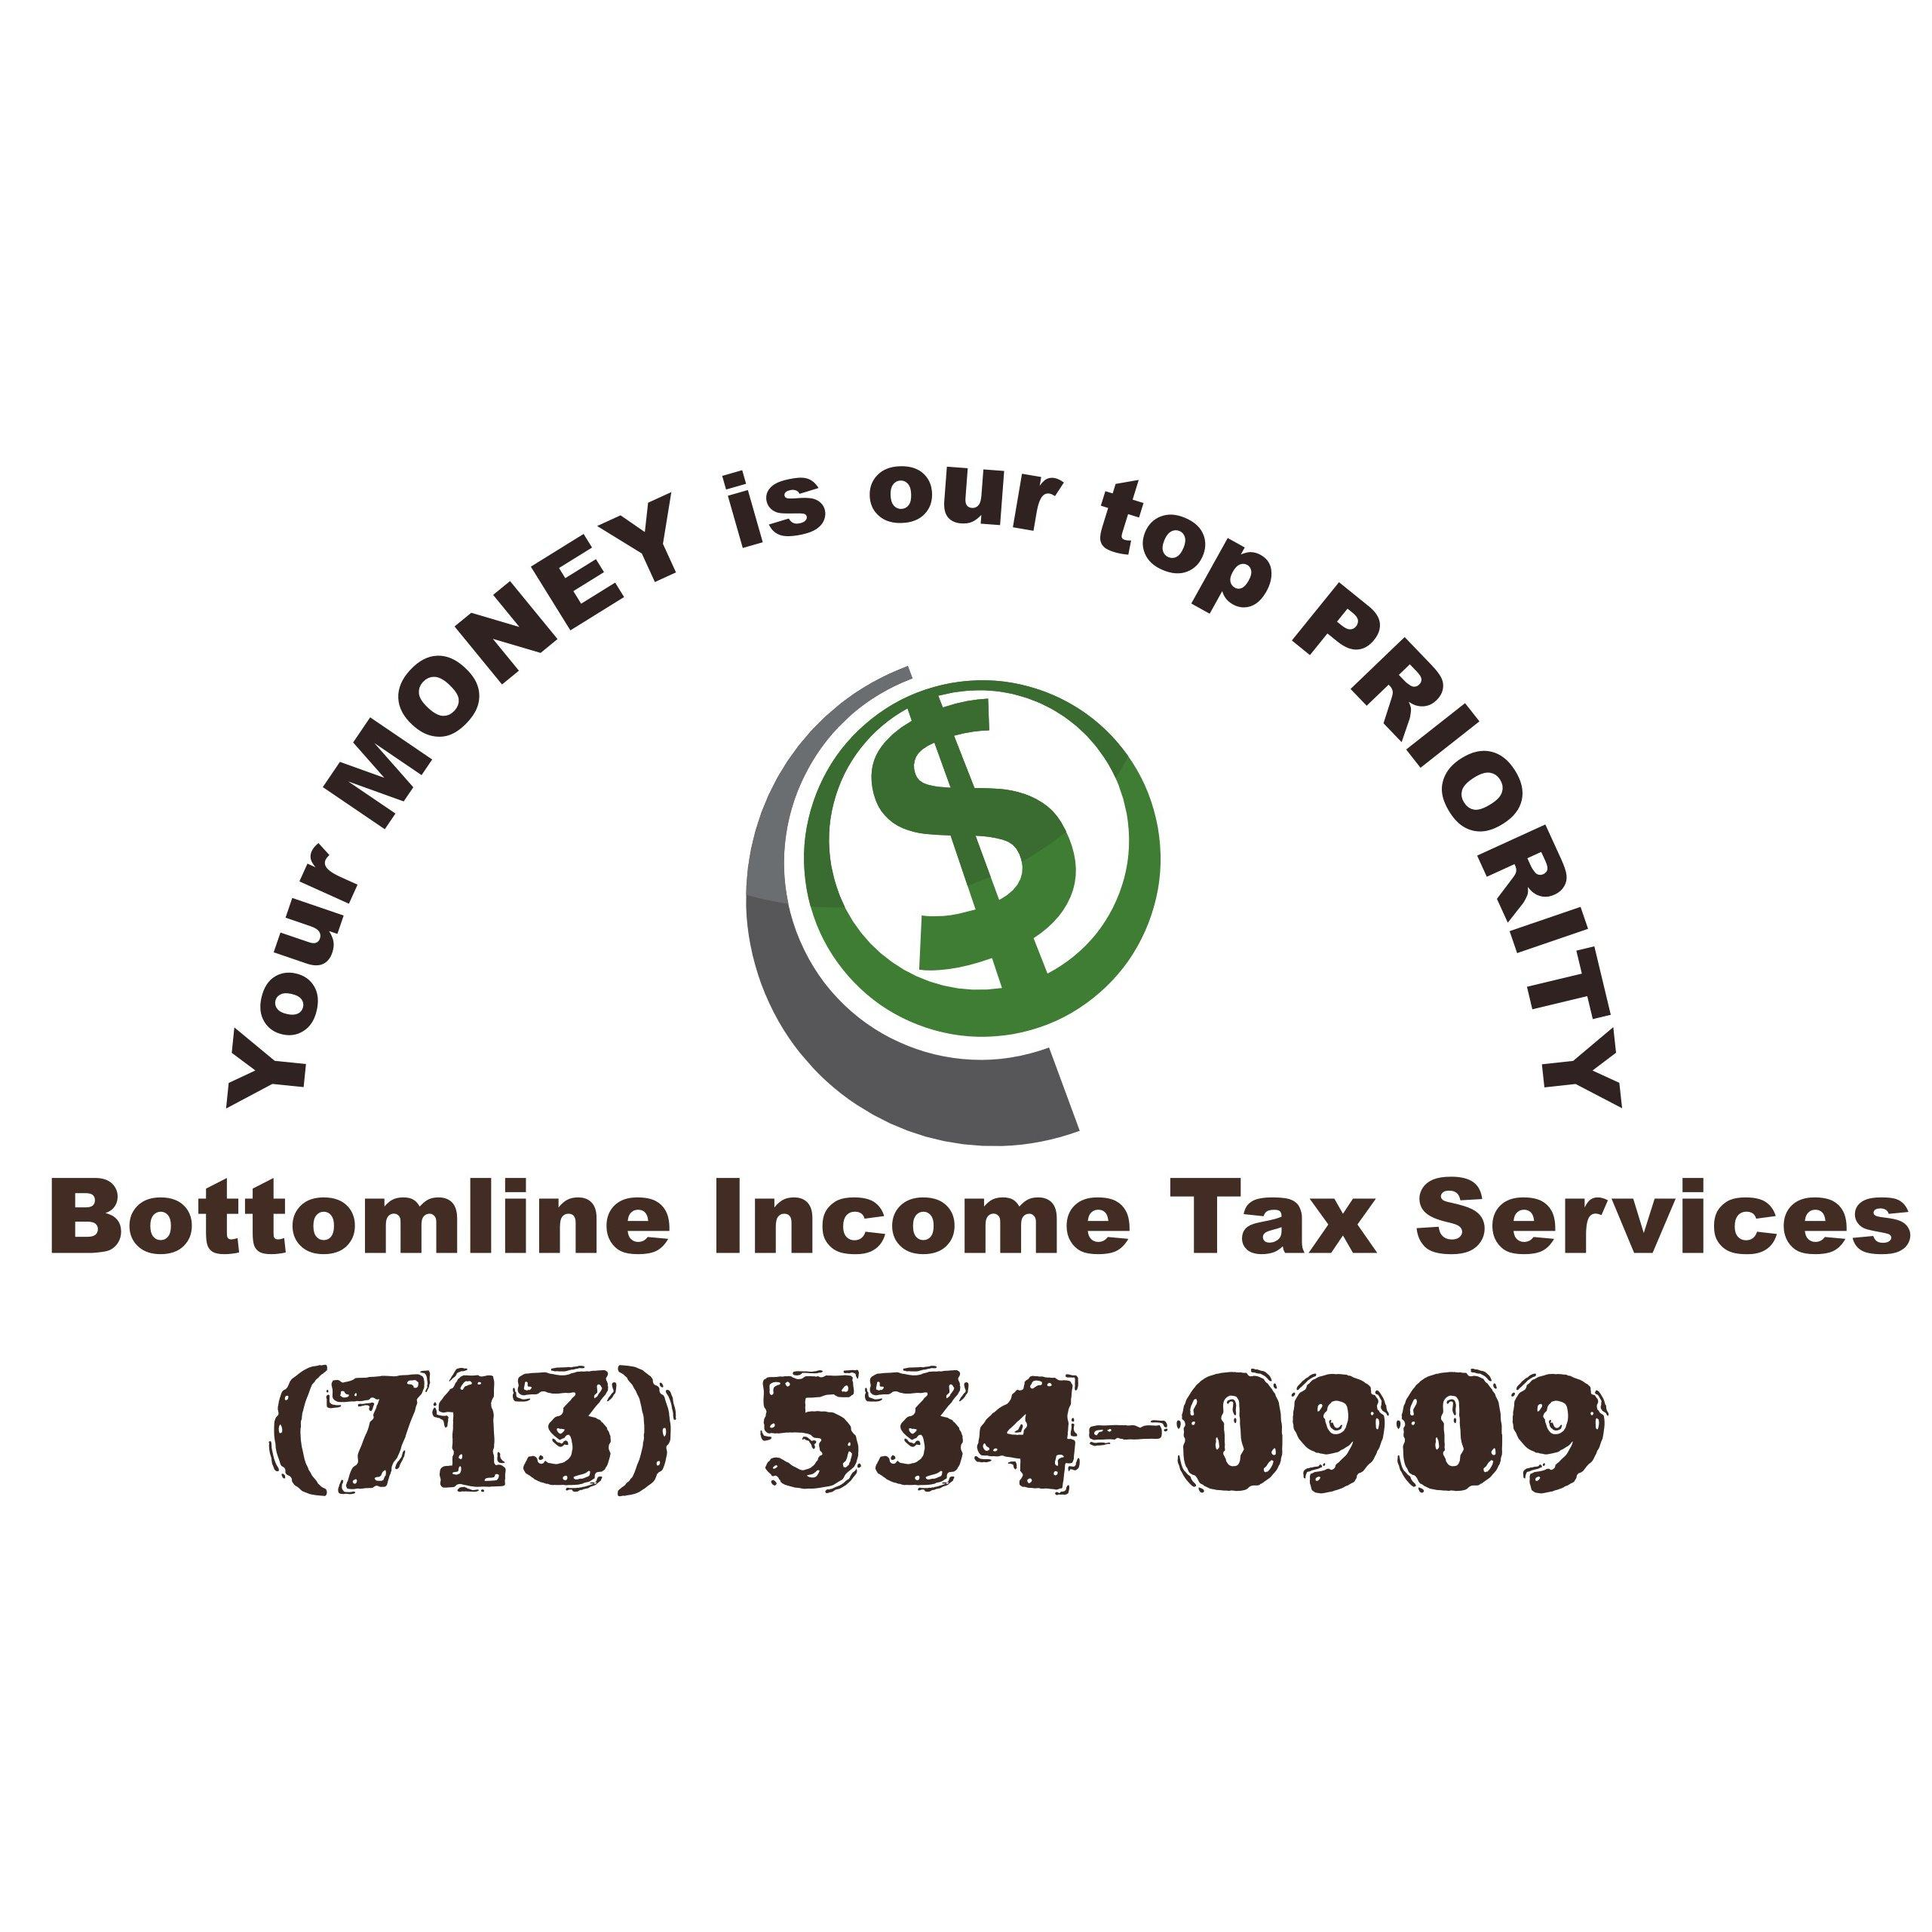 The BottomLine Income Tax Services - Pasadena, TX - Financial Advisors